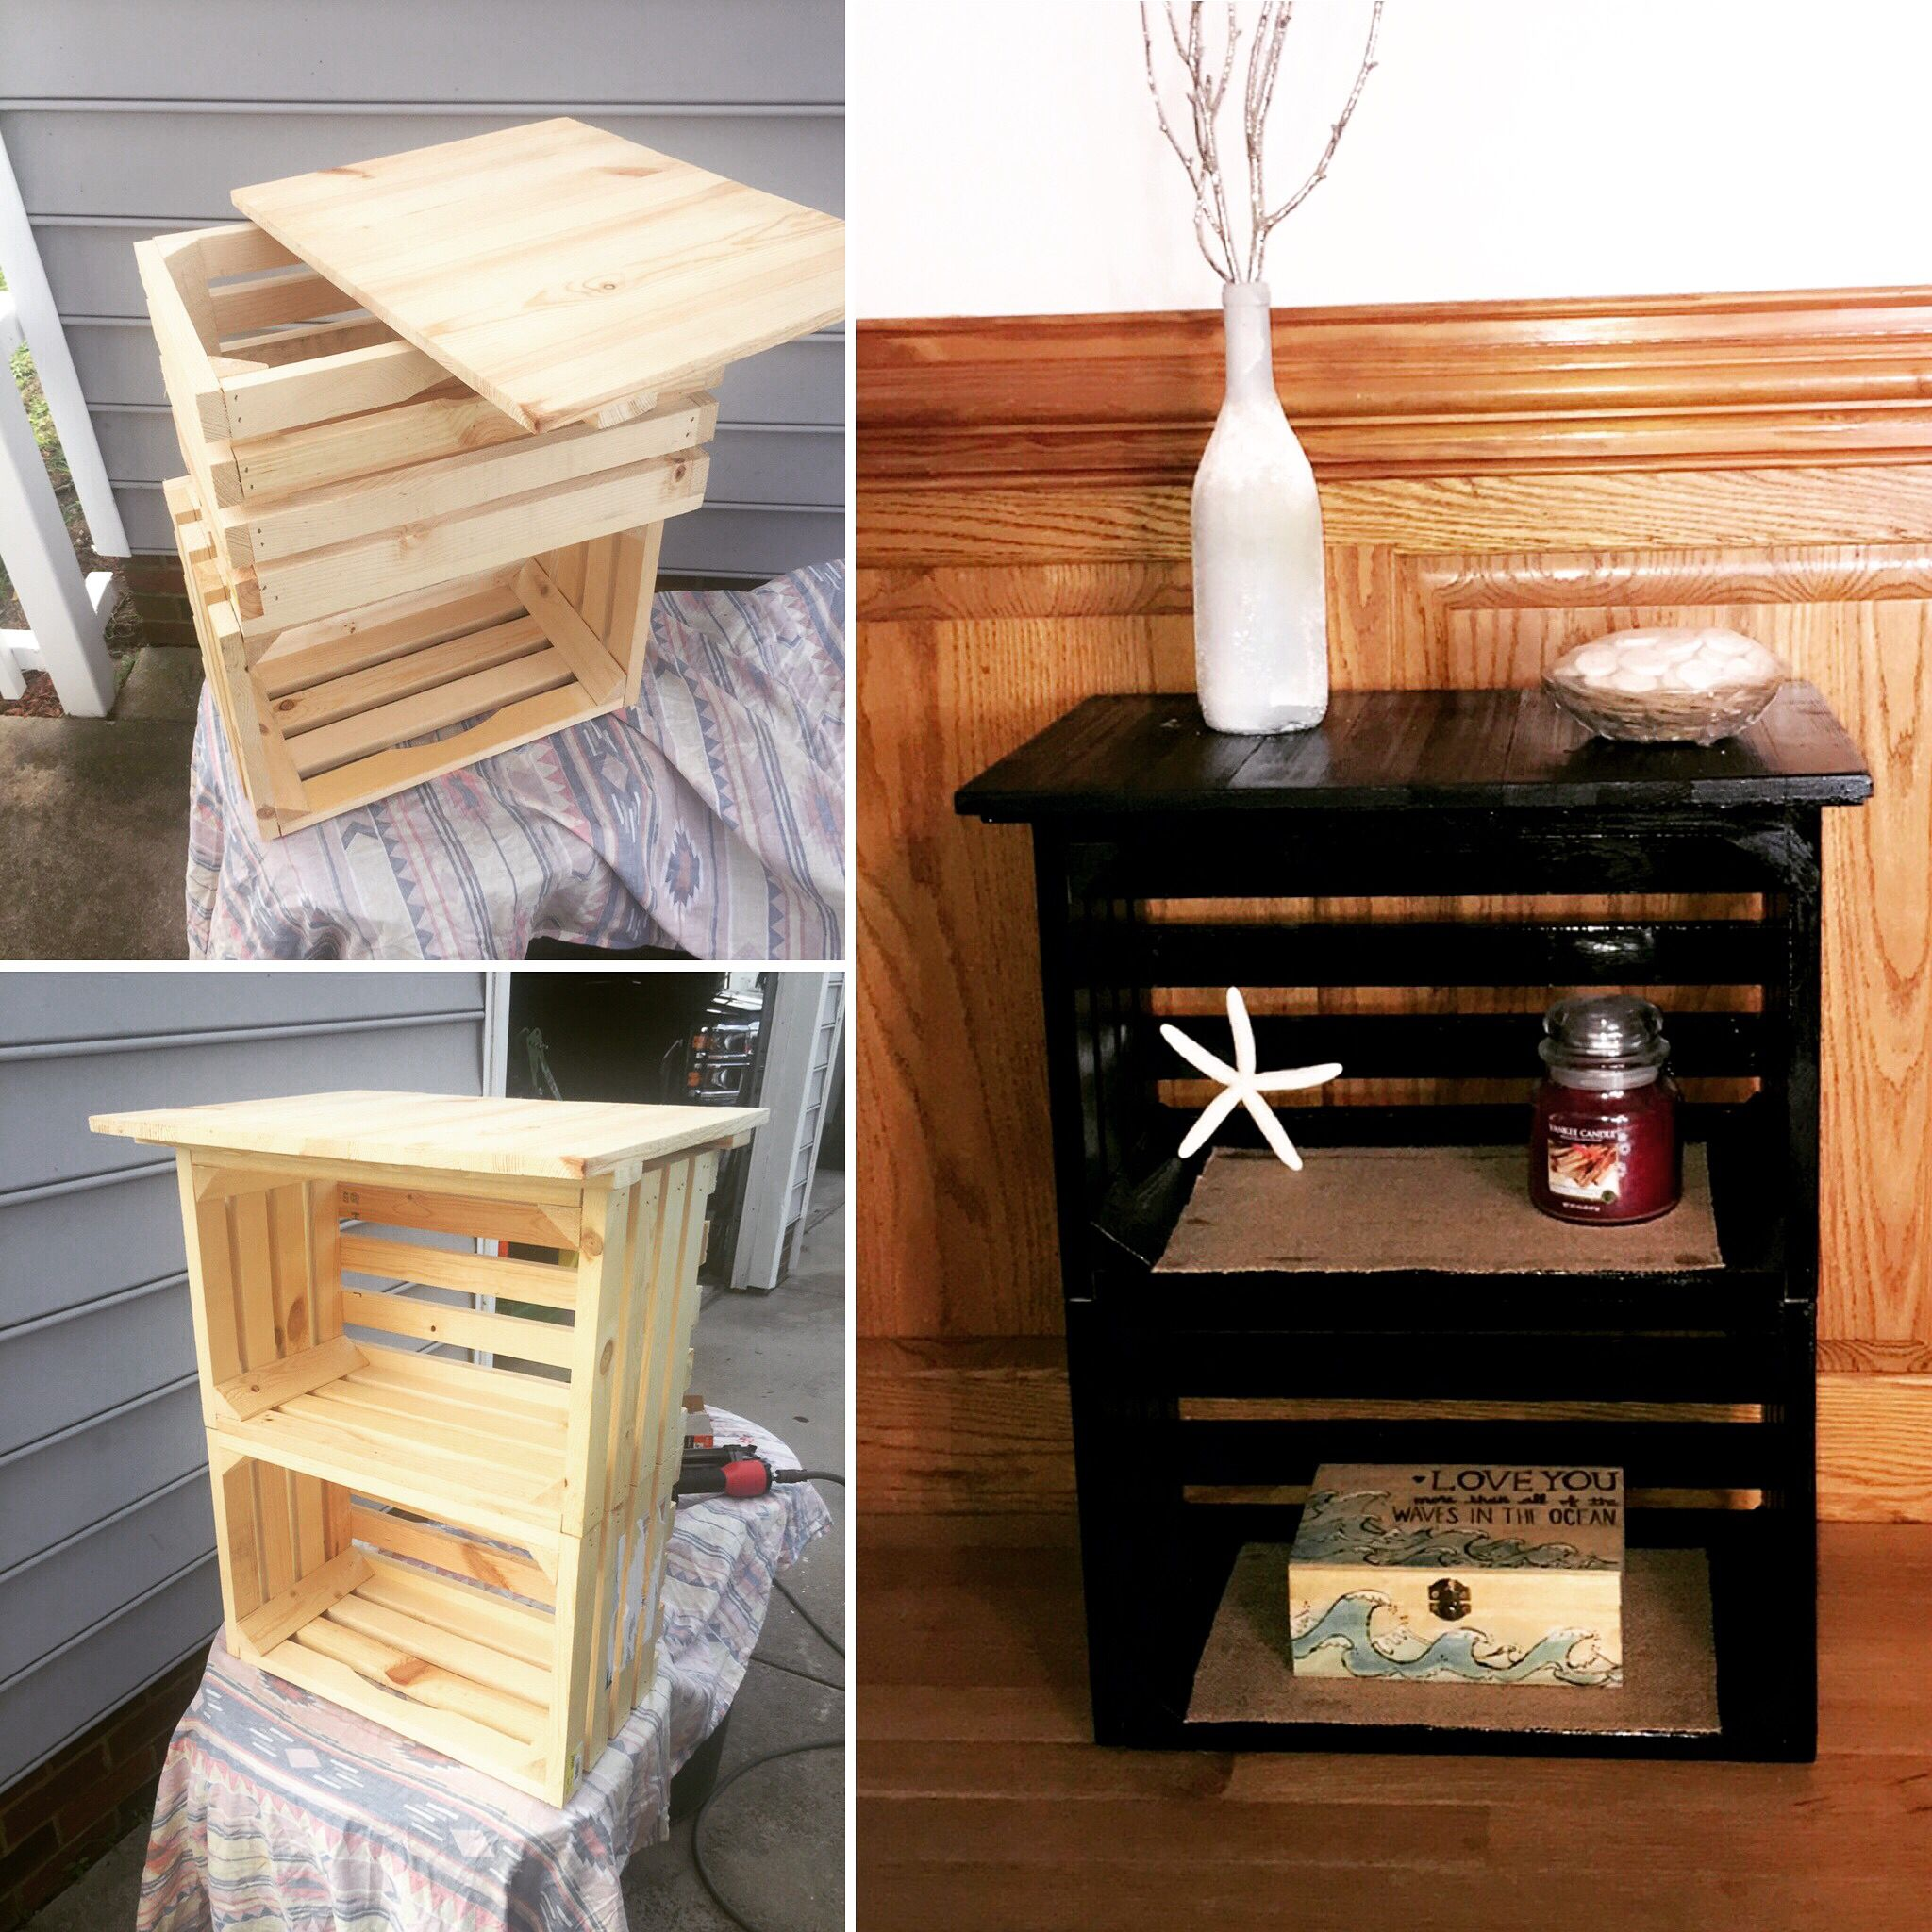 Diy crate nightstand $30 Pallet Craft Ideas Pinterest